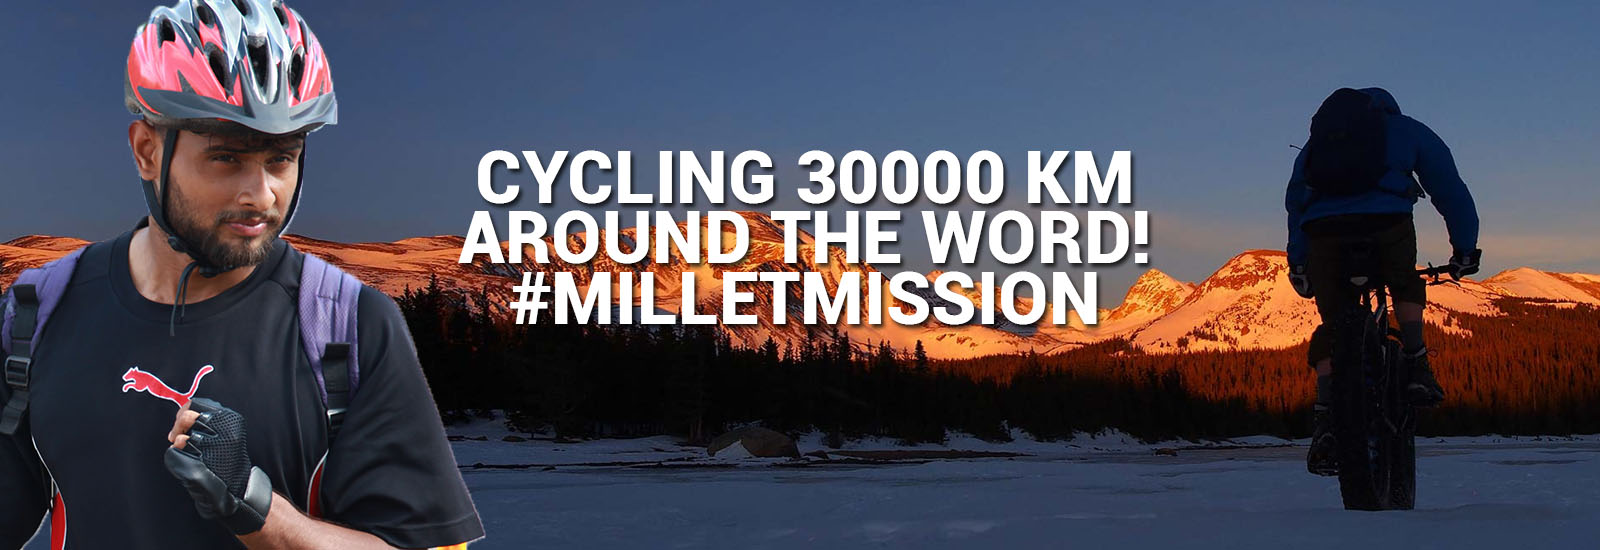 Cycling 30000 km around the world! #MilletMission